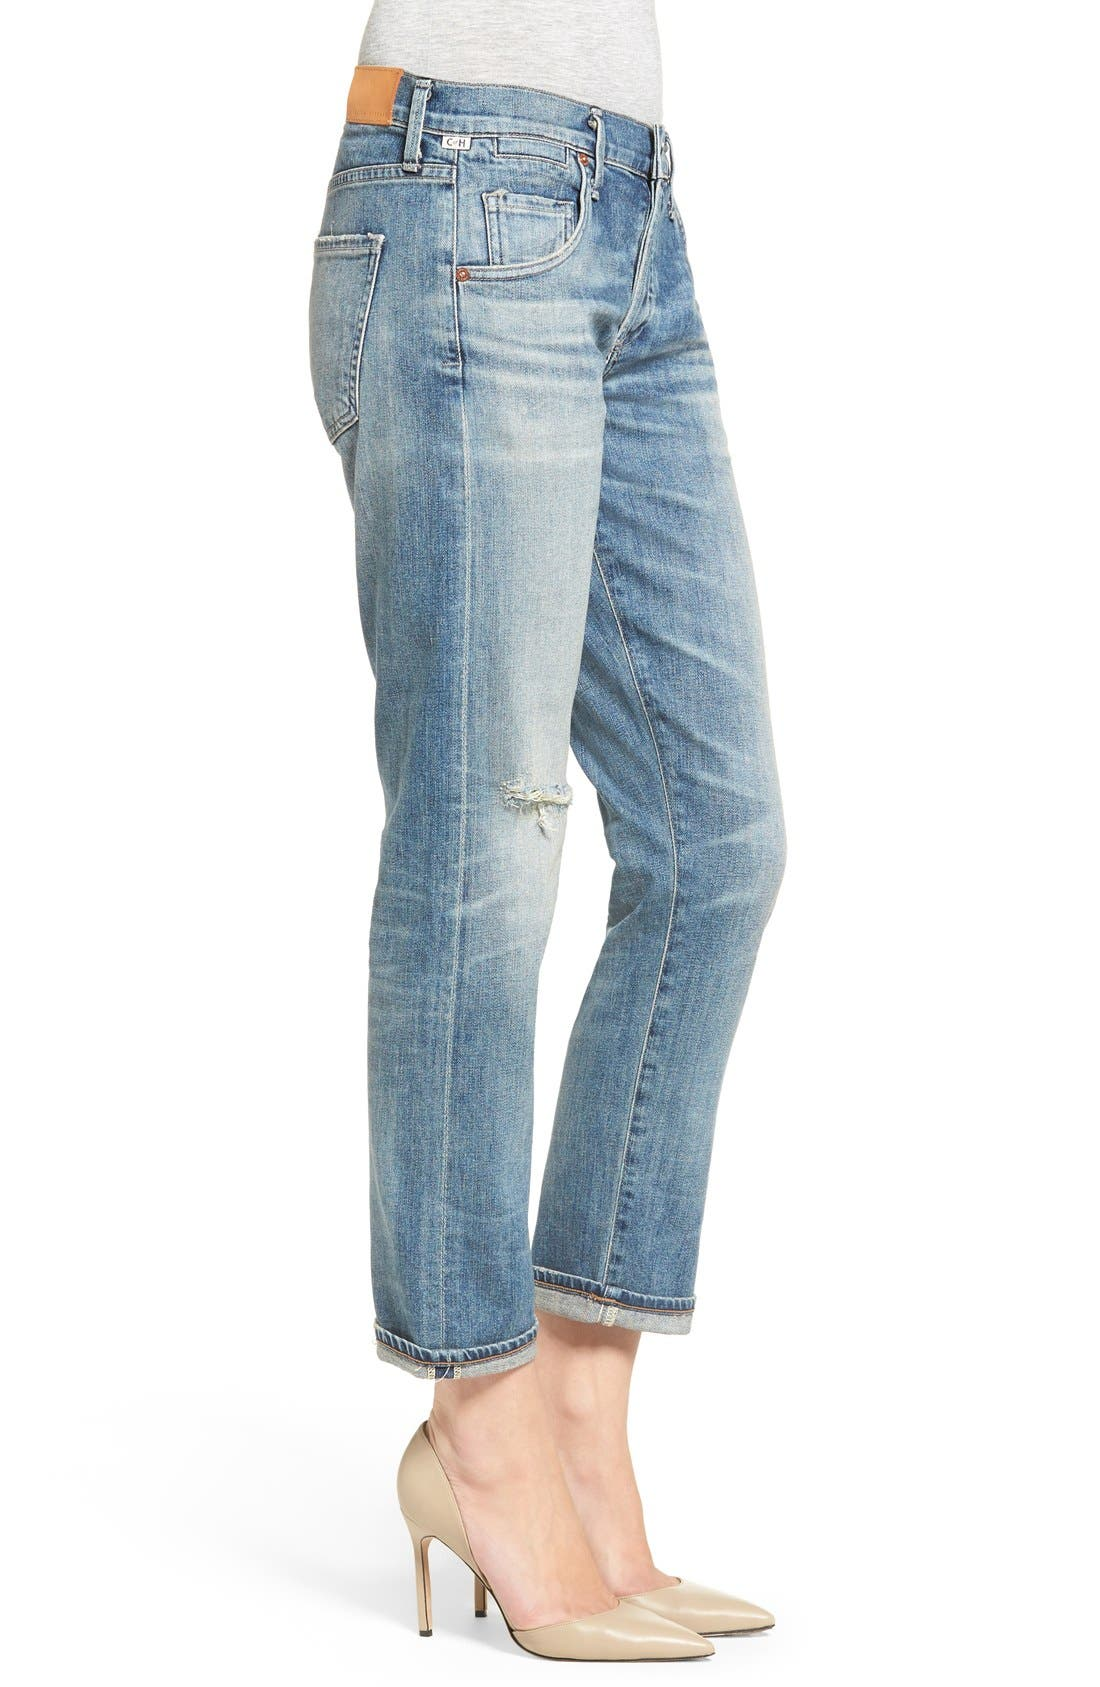 Alternate Image 3  - Citizens of Humanity 'Emerson' Ripped Slim Boyfriend Jeans (Roseland)